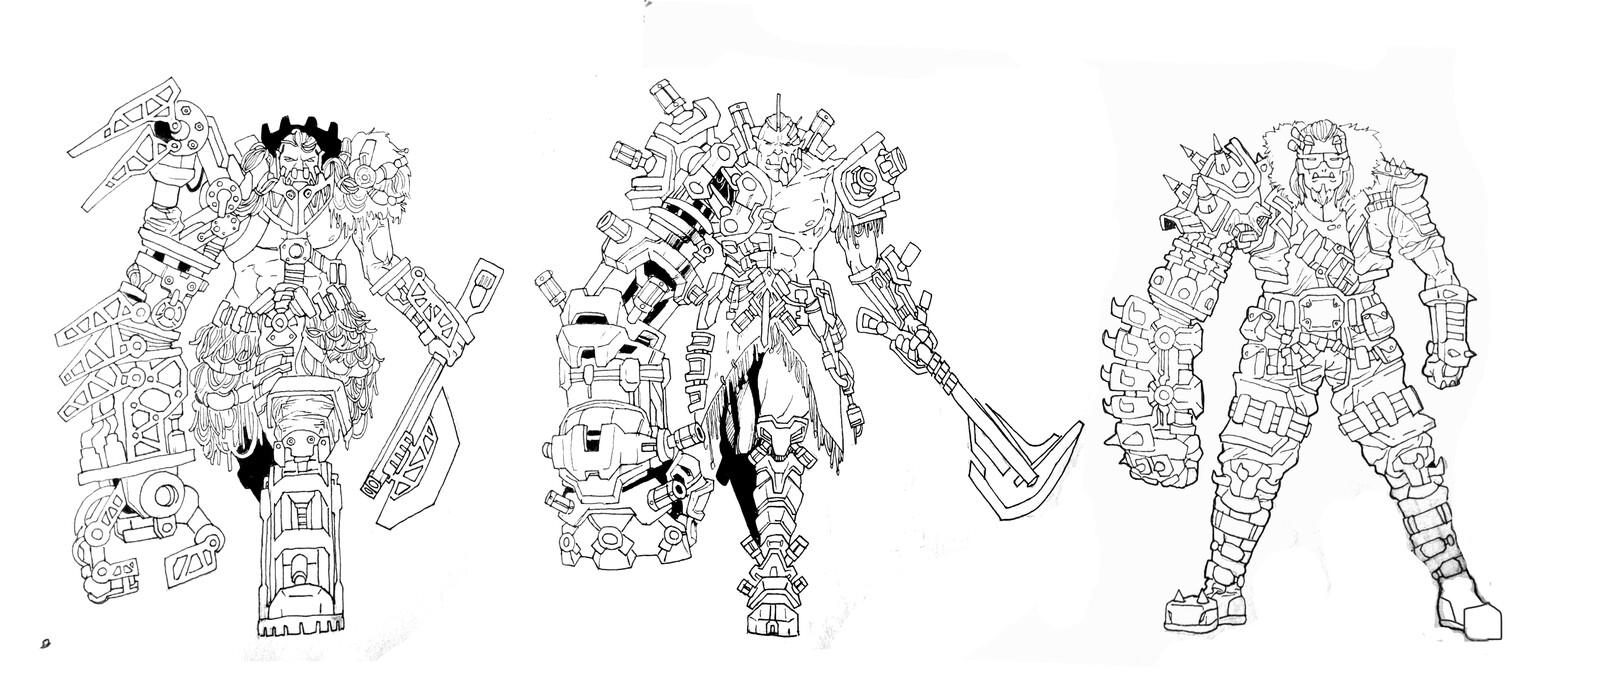 First line sketches.